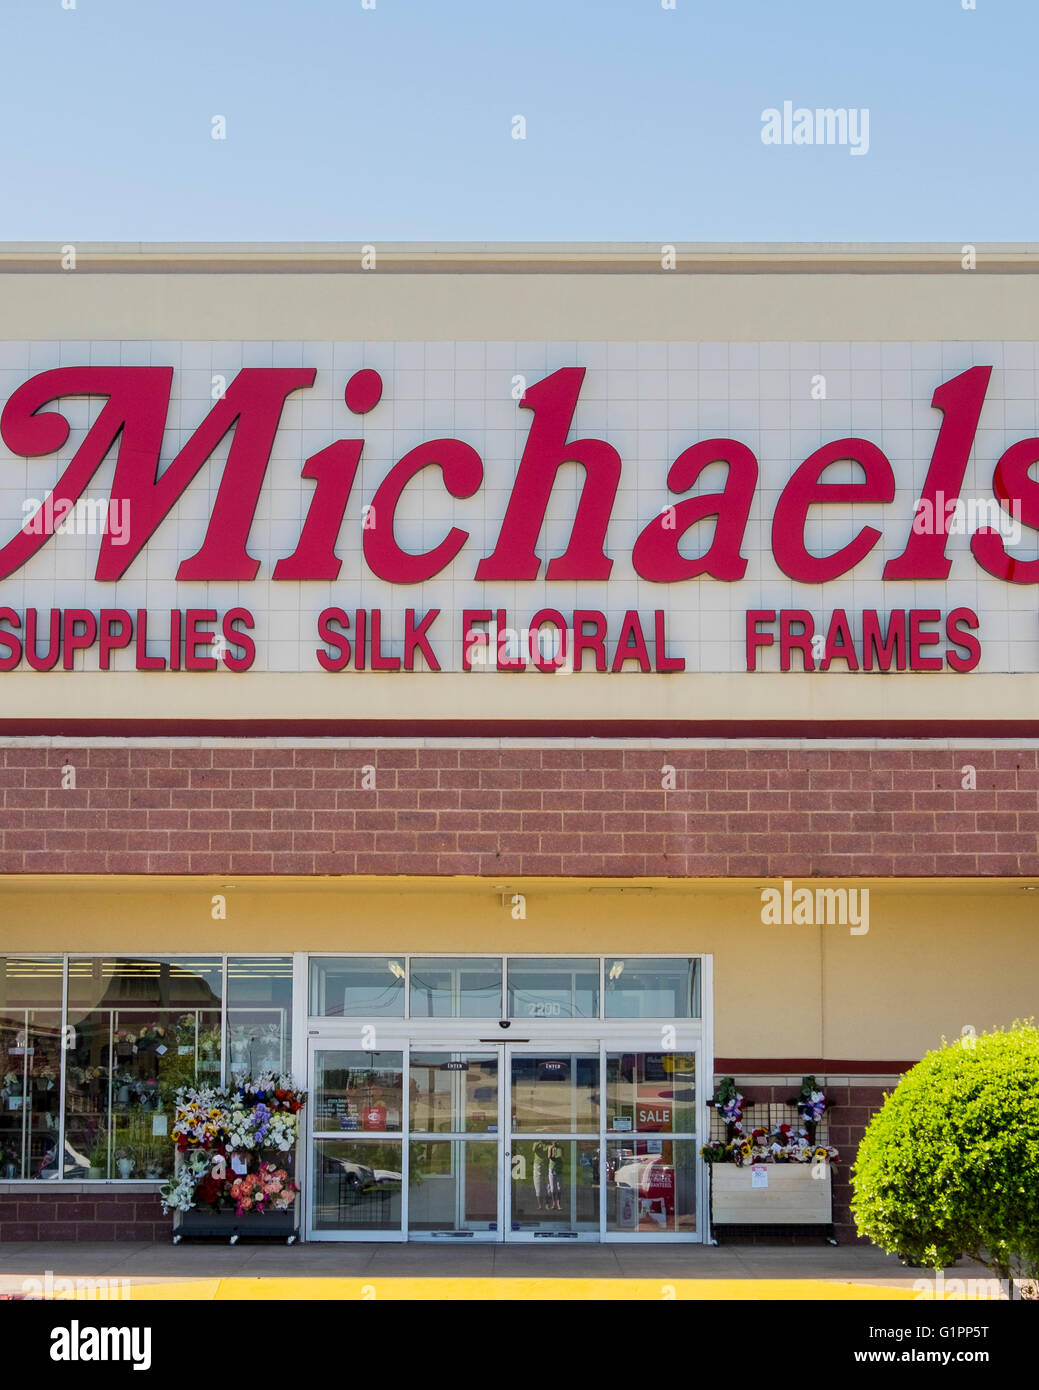 The exterior of Michaels, an arts and crafts store on Memorial Road in Oklahoma City, Oklahoma, USA. - Stock Image